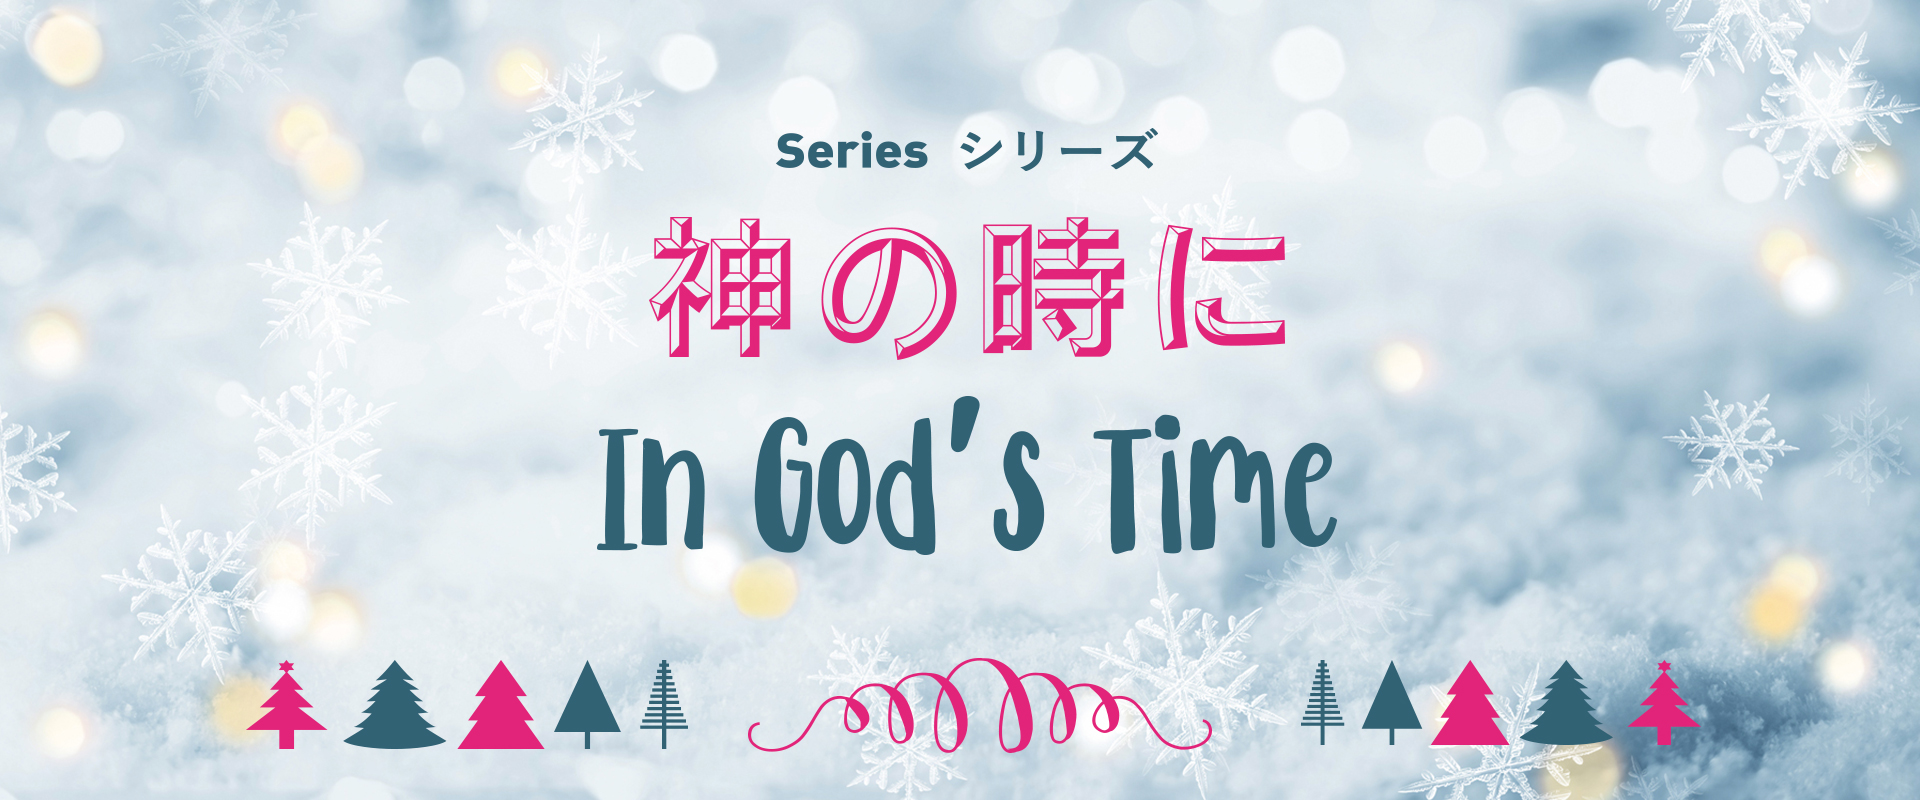 神の時に In God's Time